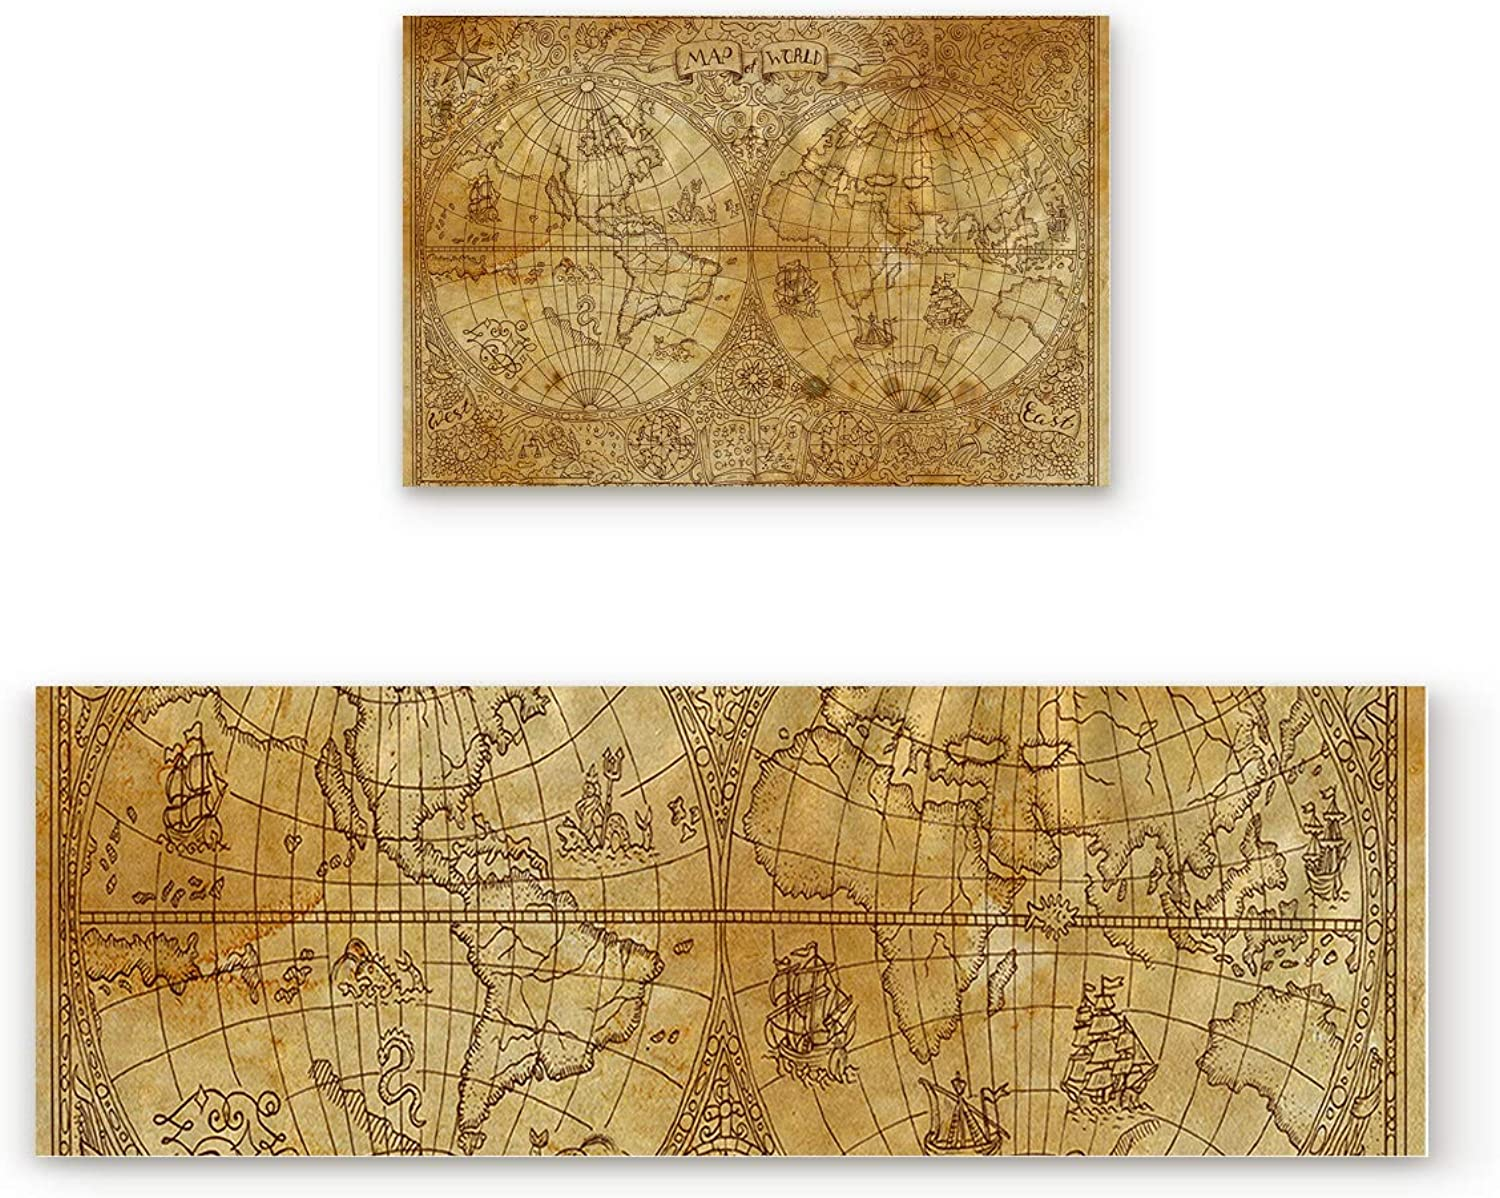 Aomike 2 Piece Non-Slip Kitchen Mat Rubber Backing Doormat Medieval World Map Runner Rug Set, Hallway Living Room Balcony Bathroom Carpet Sets (19.7  x 31.5 +19.7  x 47.2 )